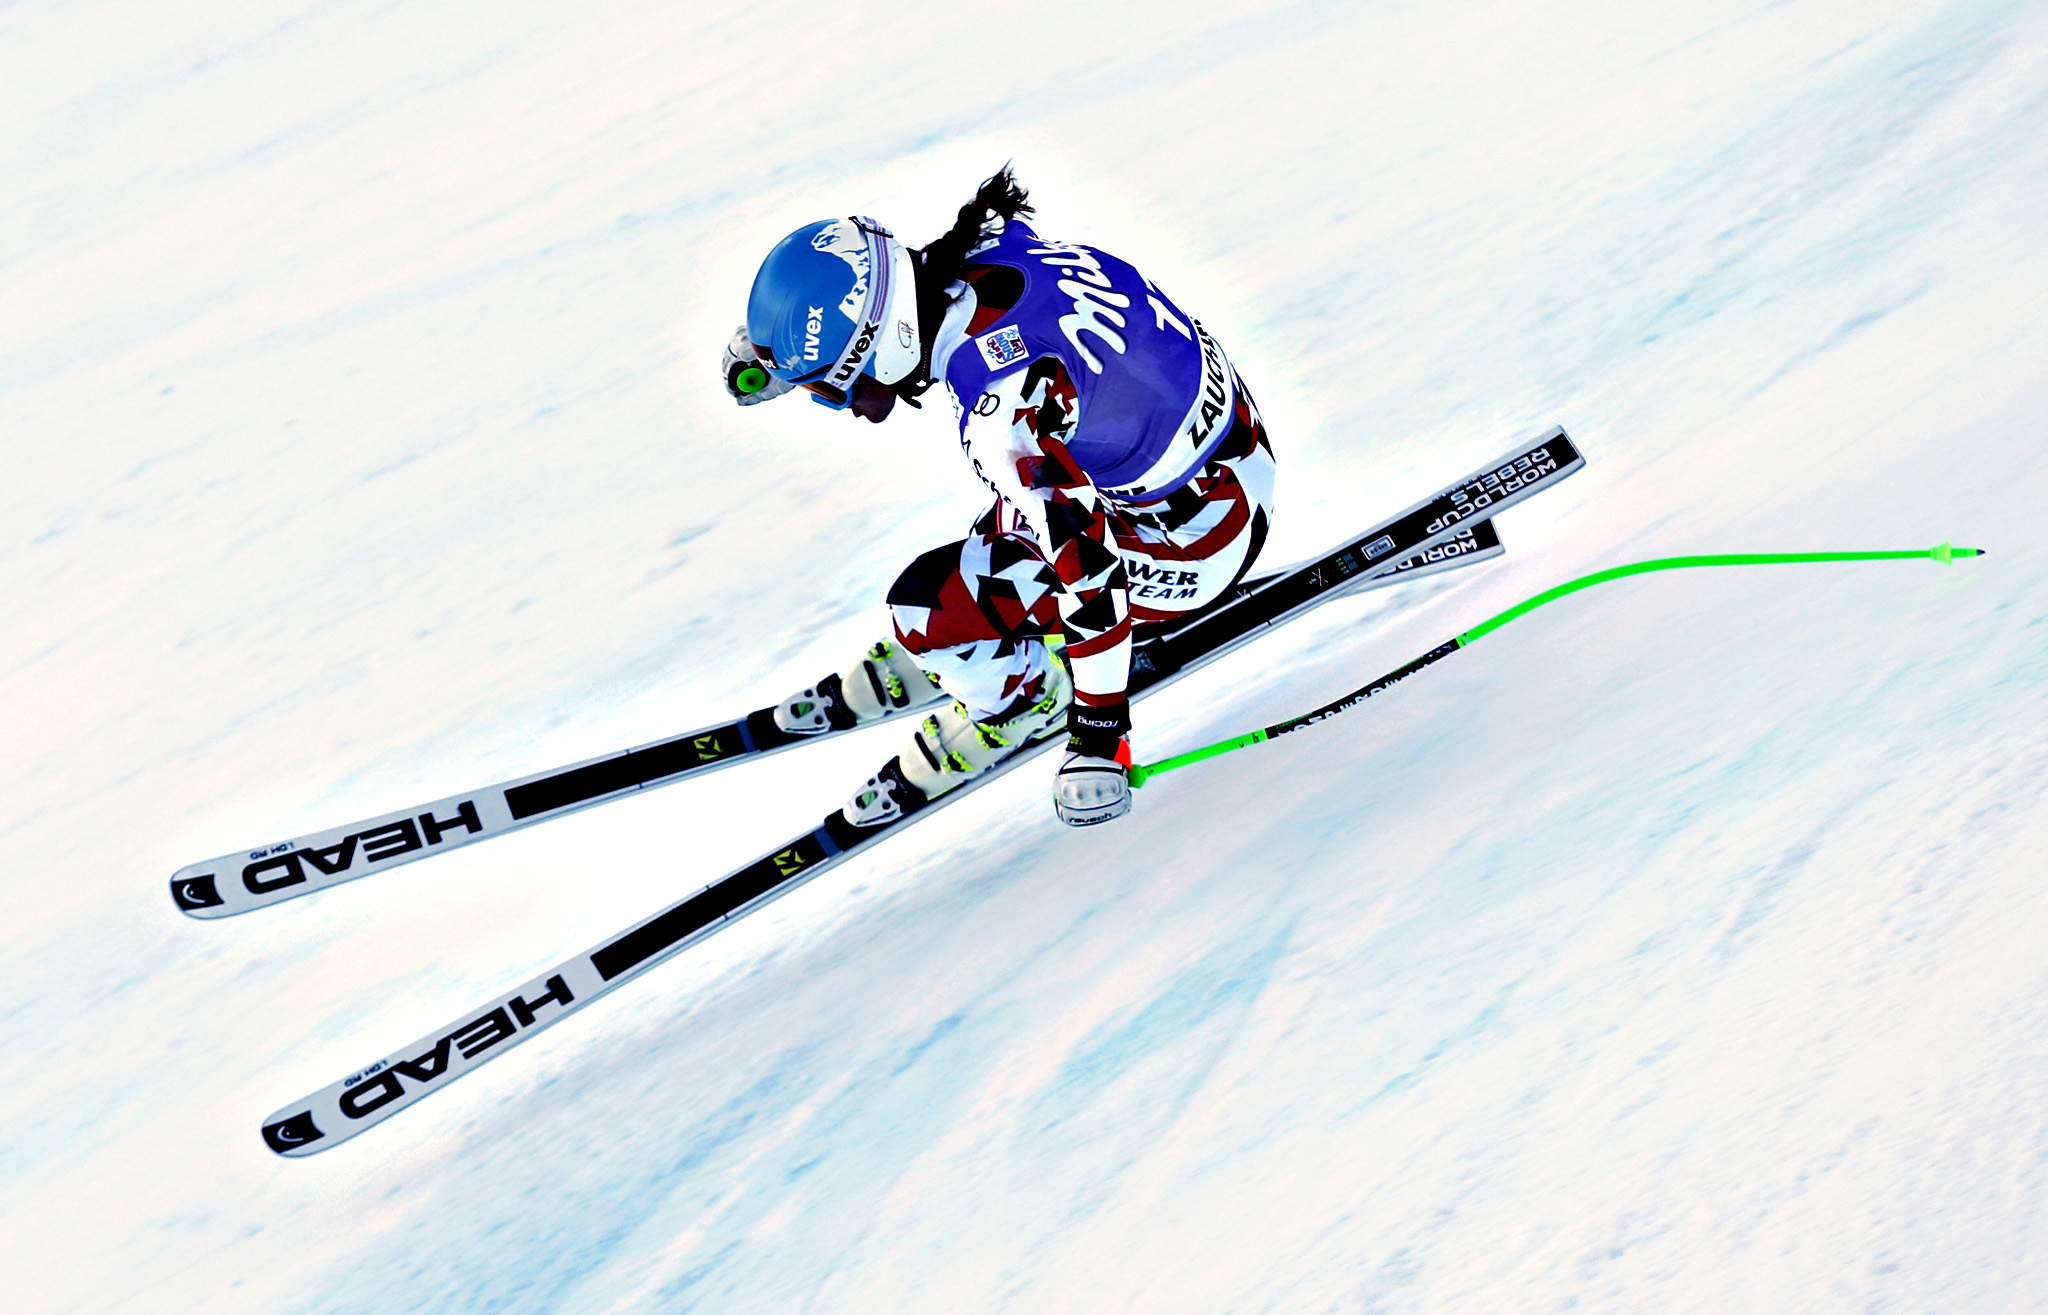 Elisabeth Goergl, of Austria, speeds down the course during a training for an alpine ski, women's World Cup downhill in Altenmarkt Zauchensee, Austria, Friday, Jan 8, 2016.